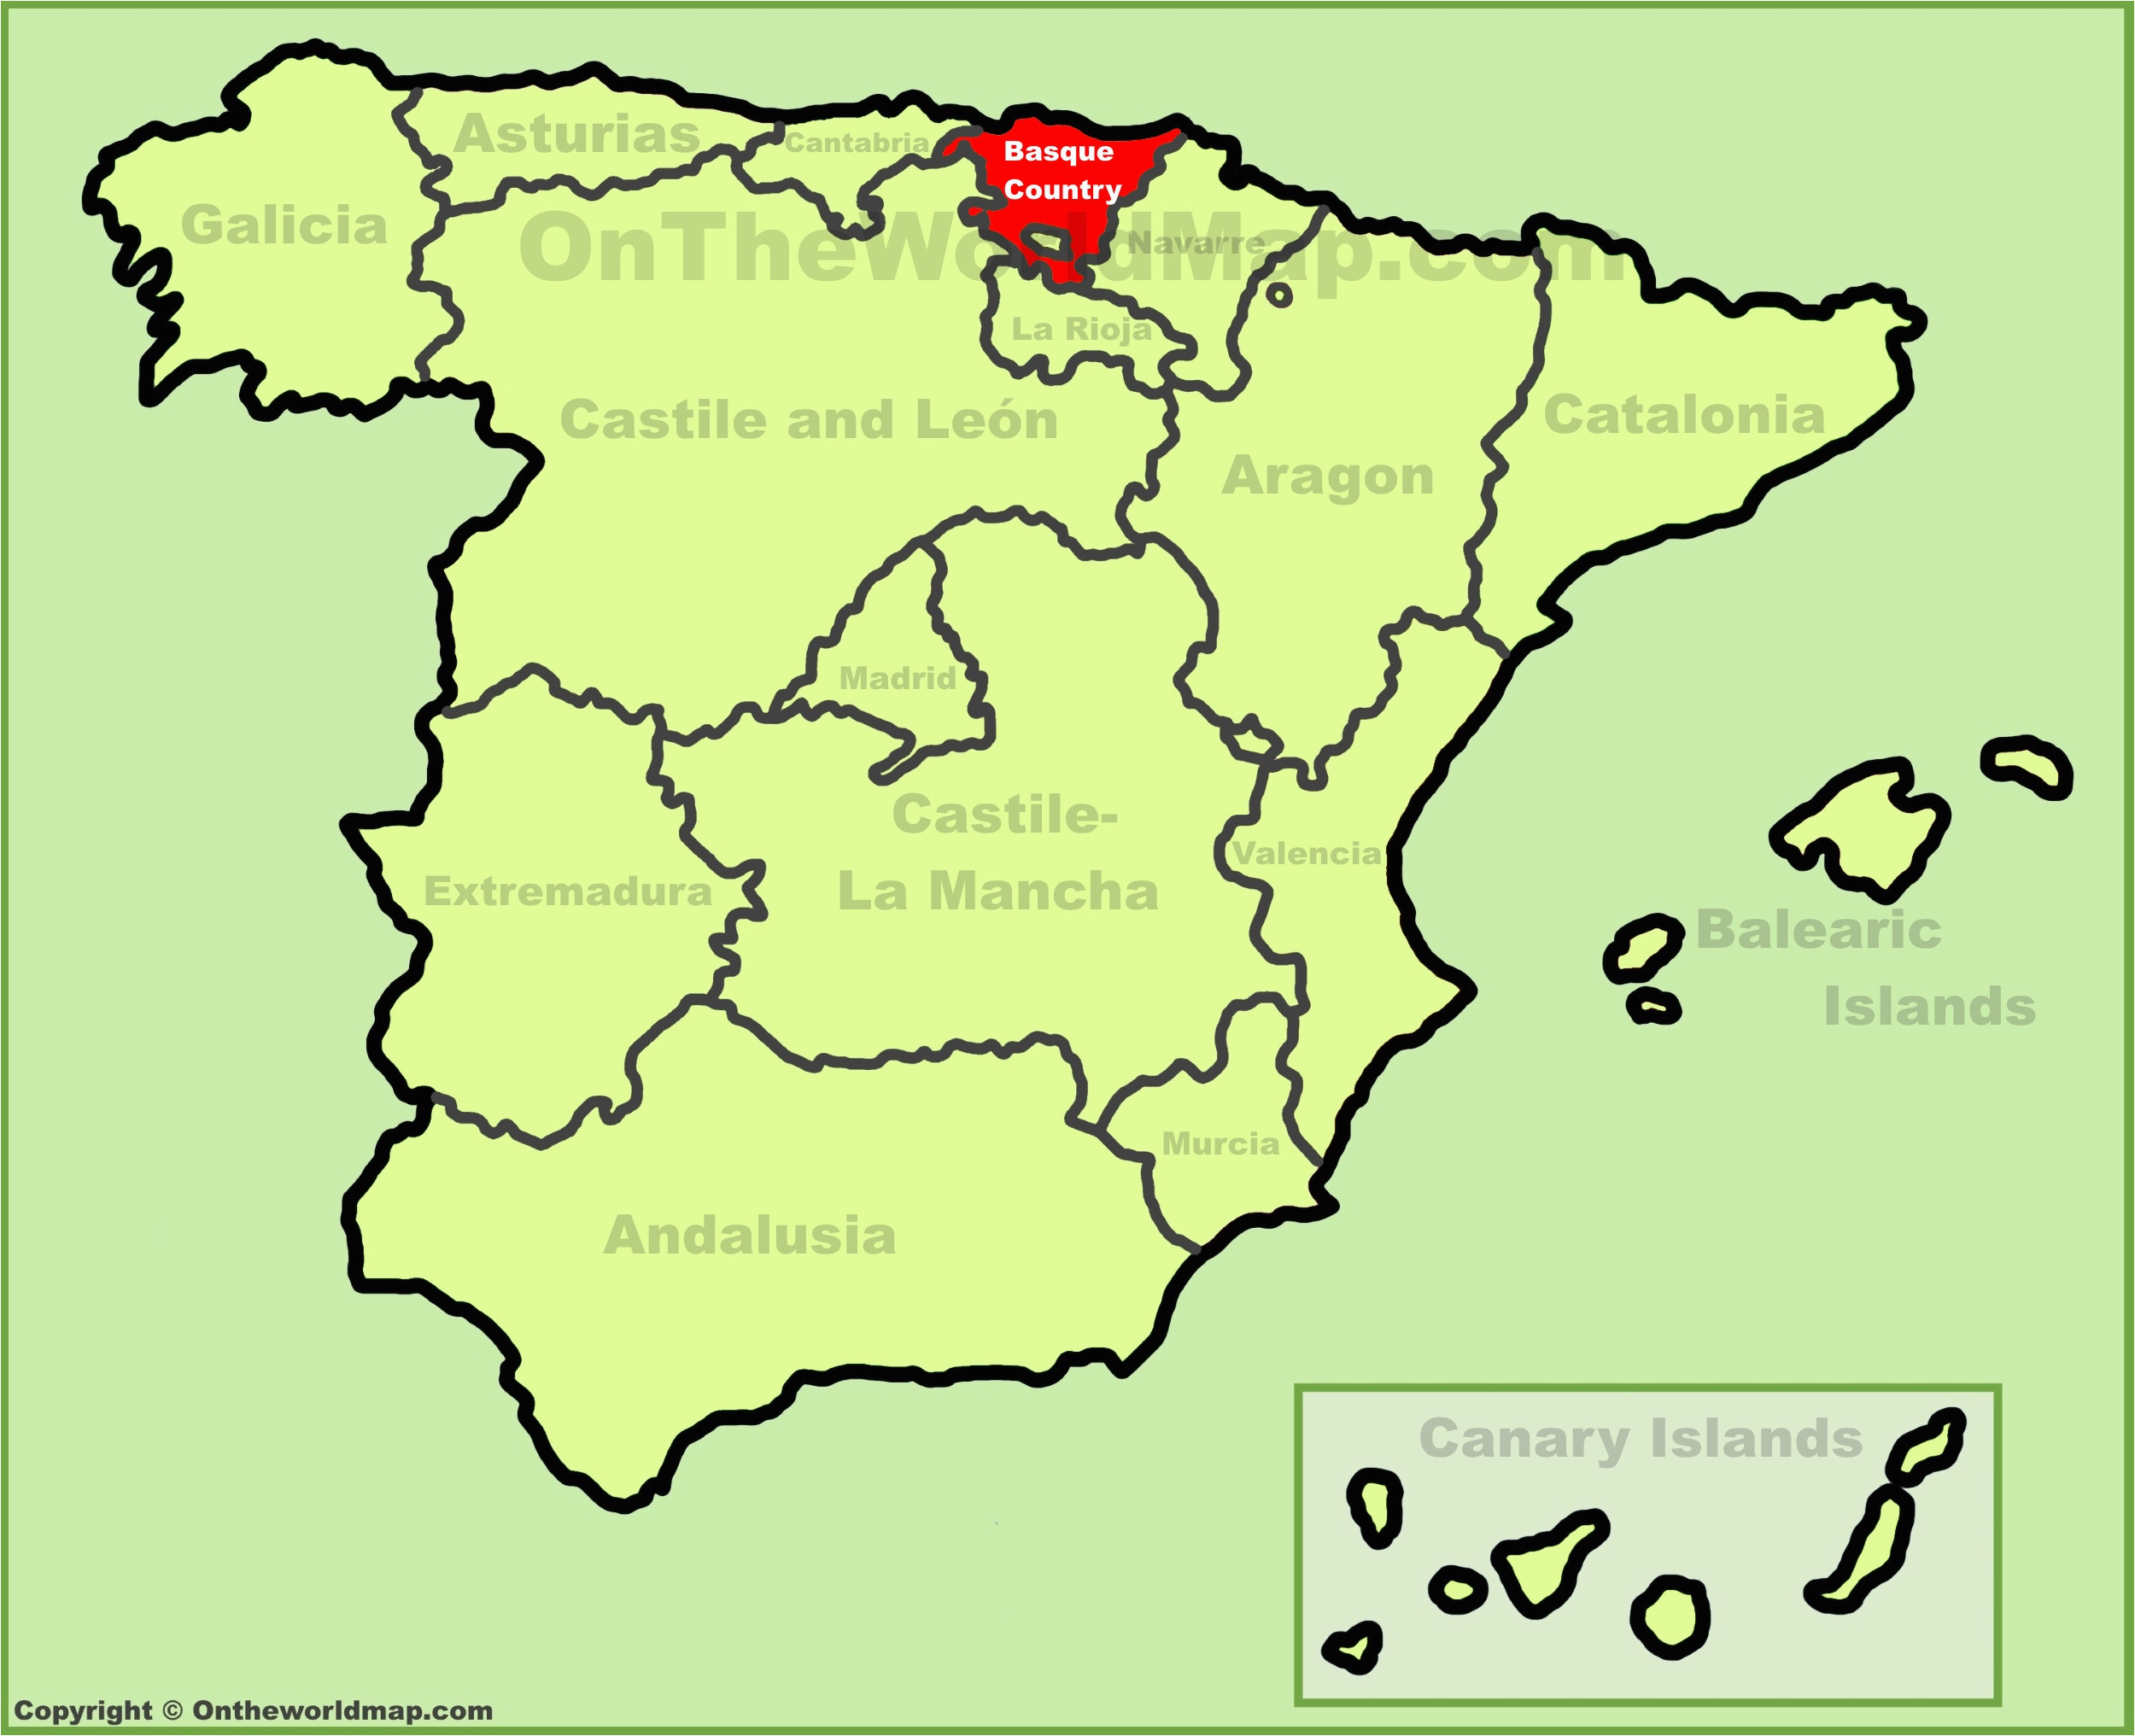 Map Of Spain Basque Region Basques Map and Travel Information Download Free Basques Map